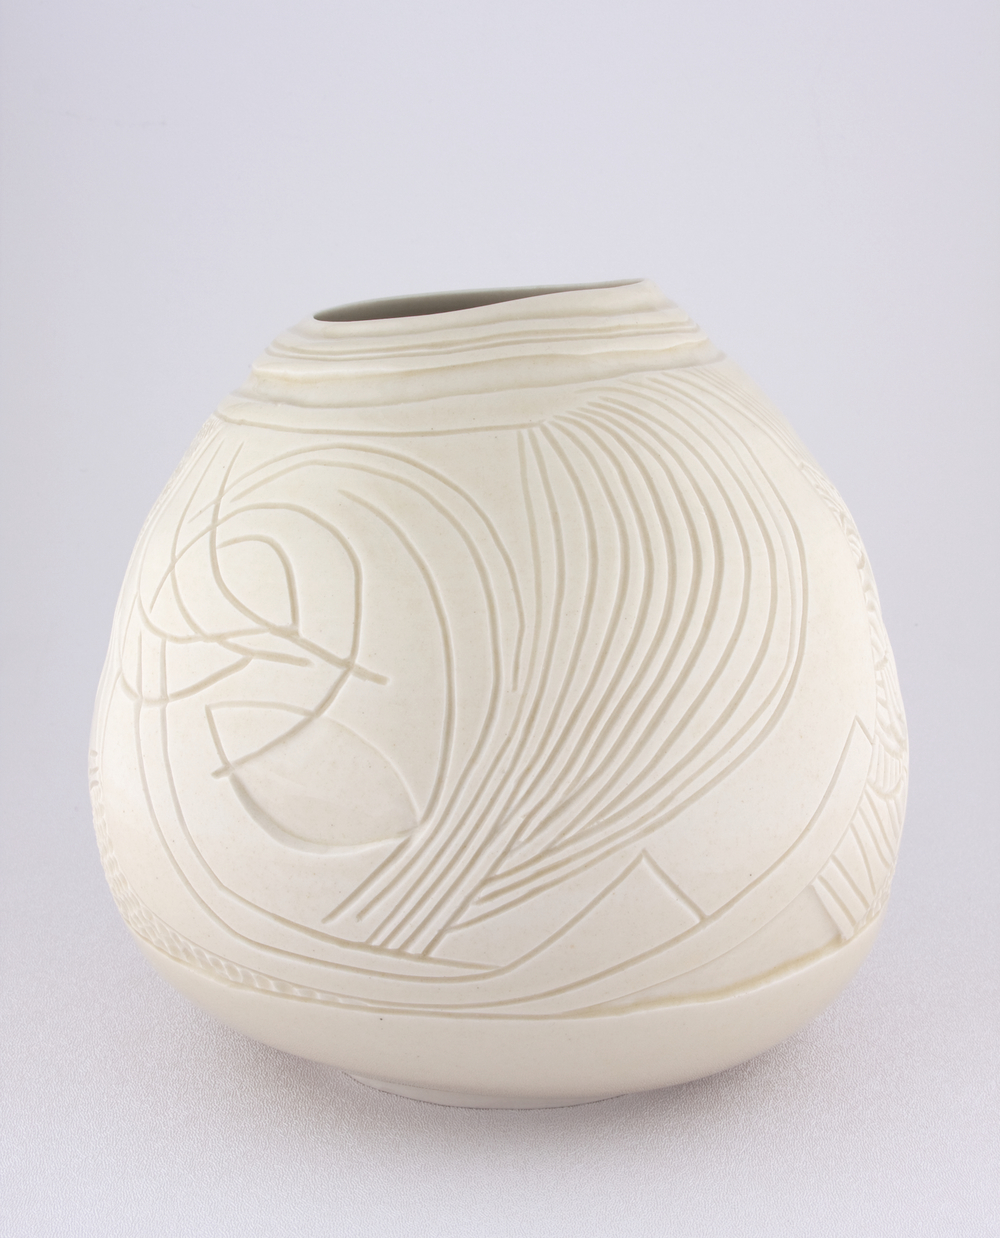 Shio Kusaka  Untitled (freestyle 2)  2008 Porcelain 7 1/2h x 7 1/4w x 7 1/4d in SK047